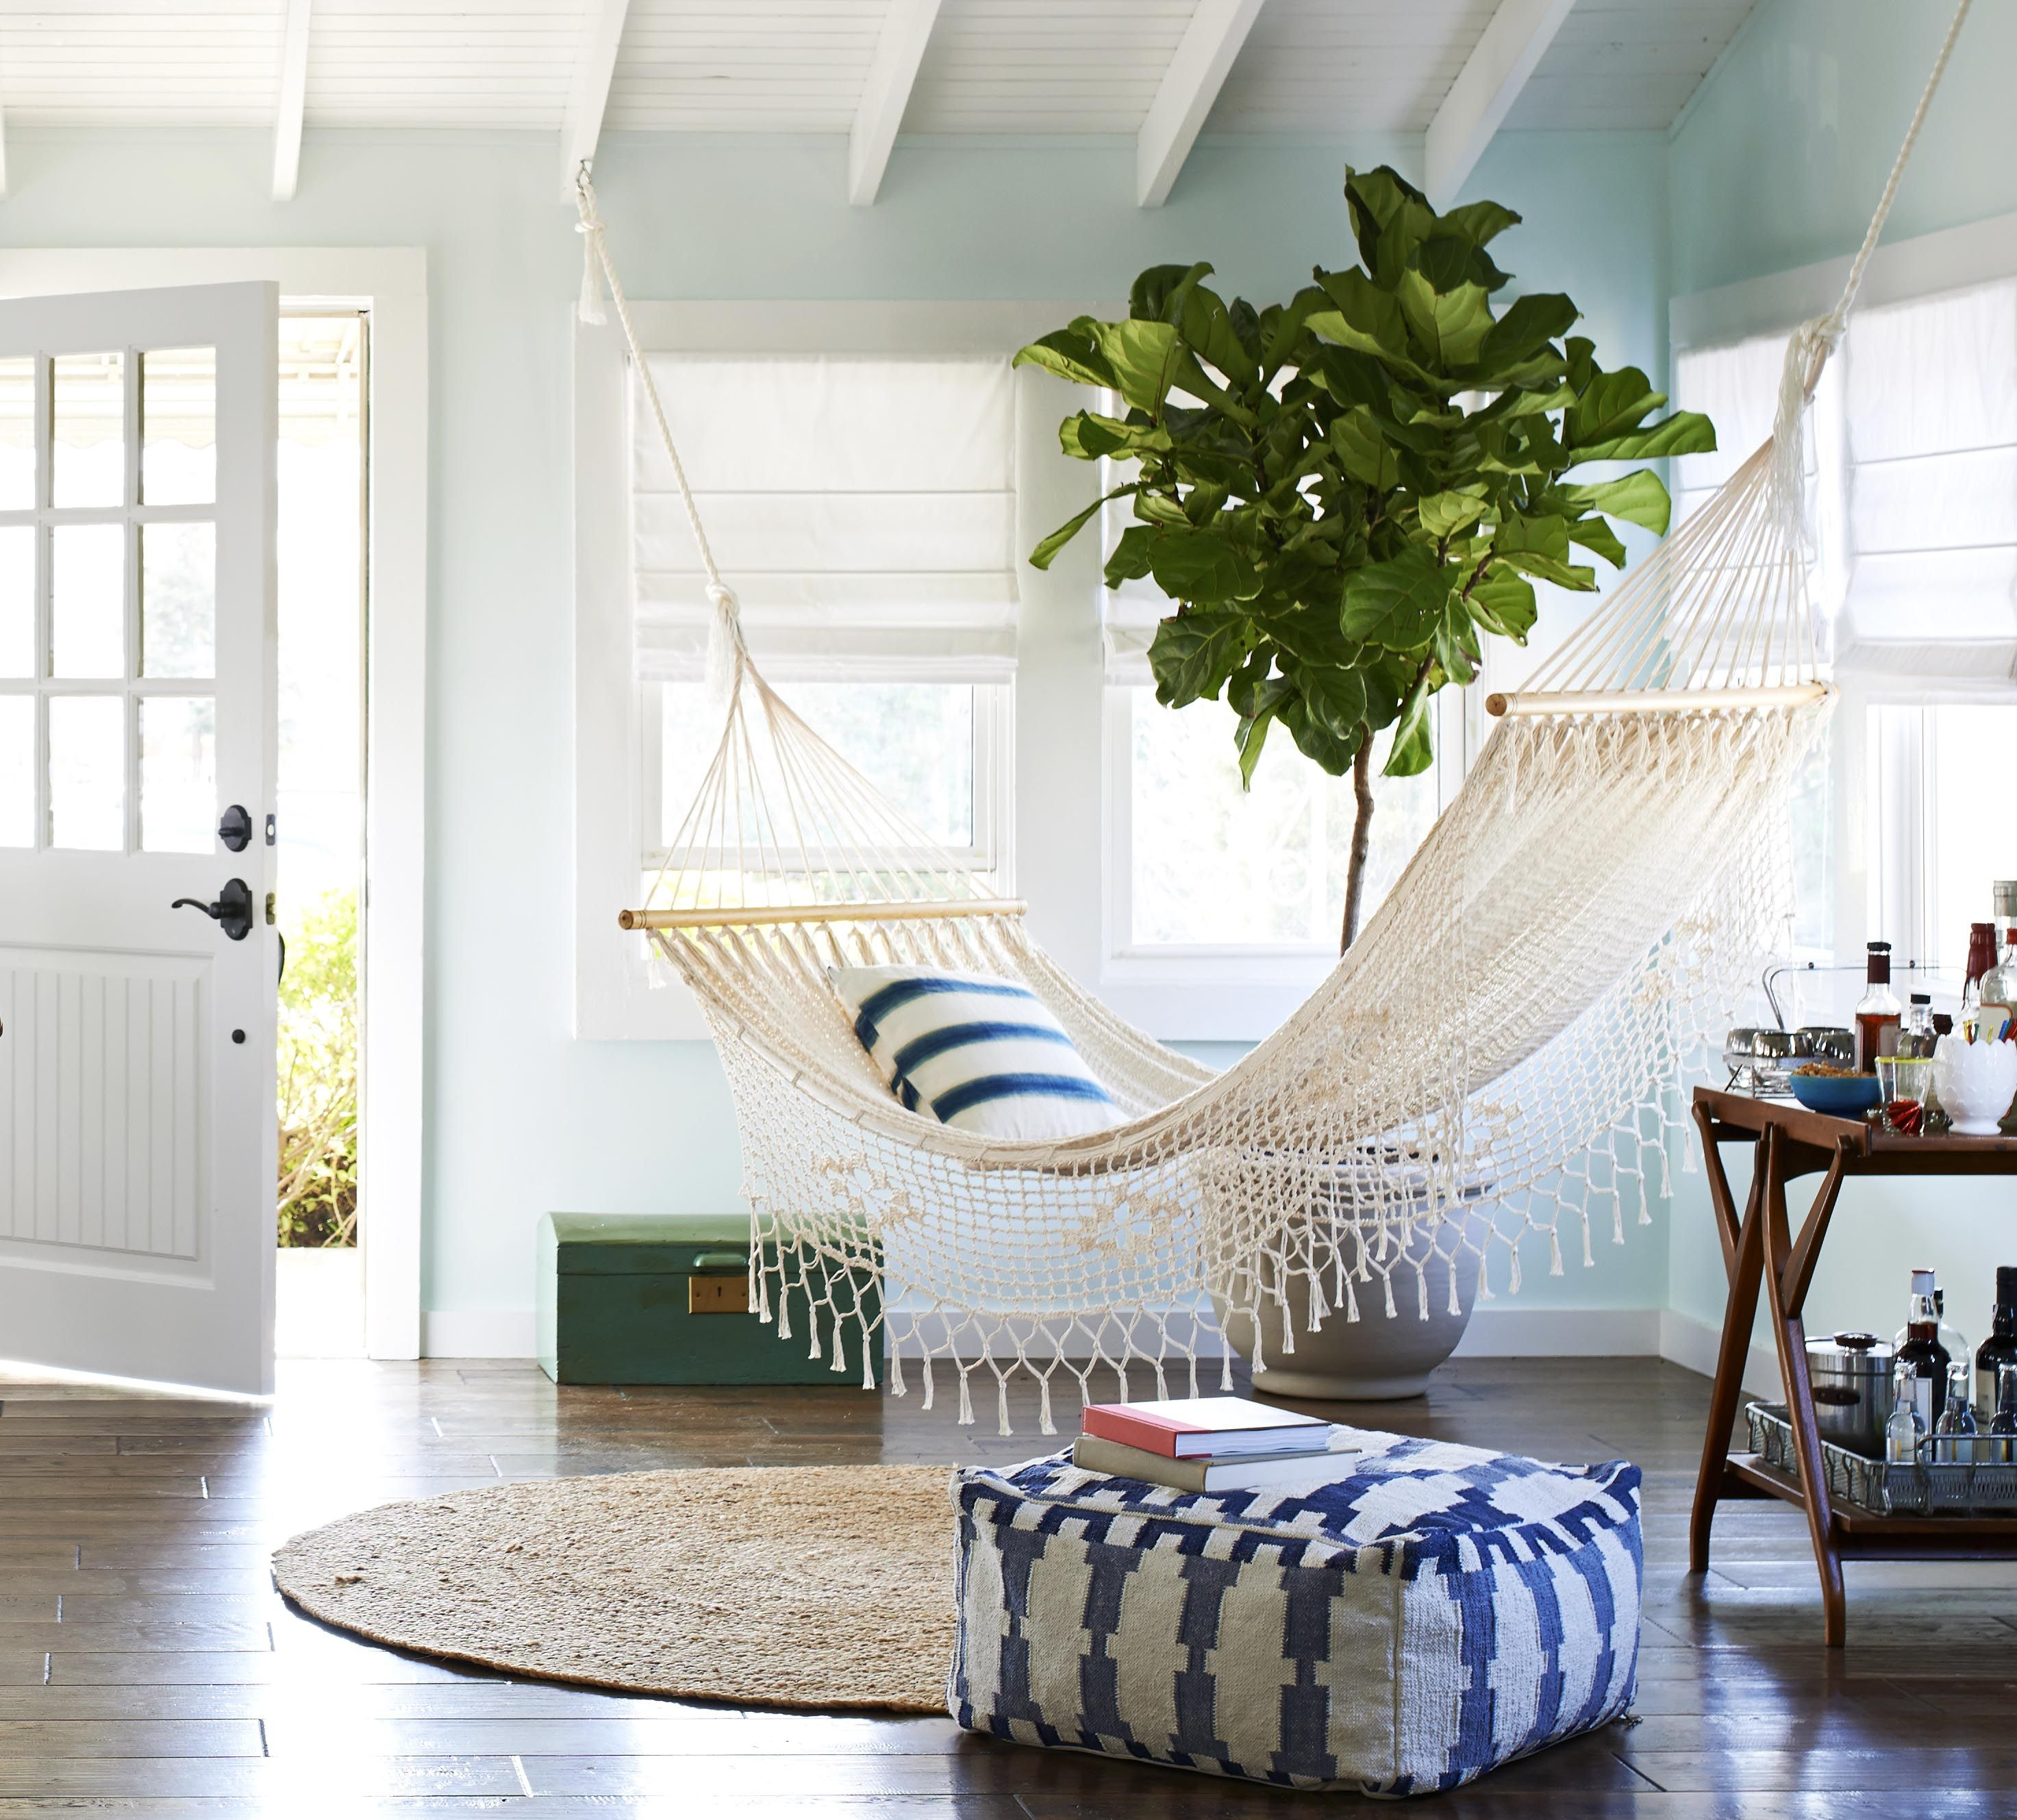 Create an outdoor chill out space indoors with a hammock!!